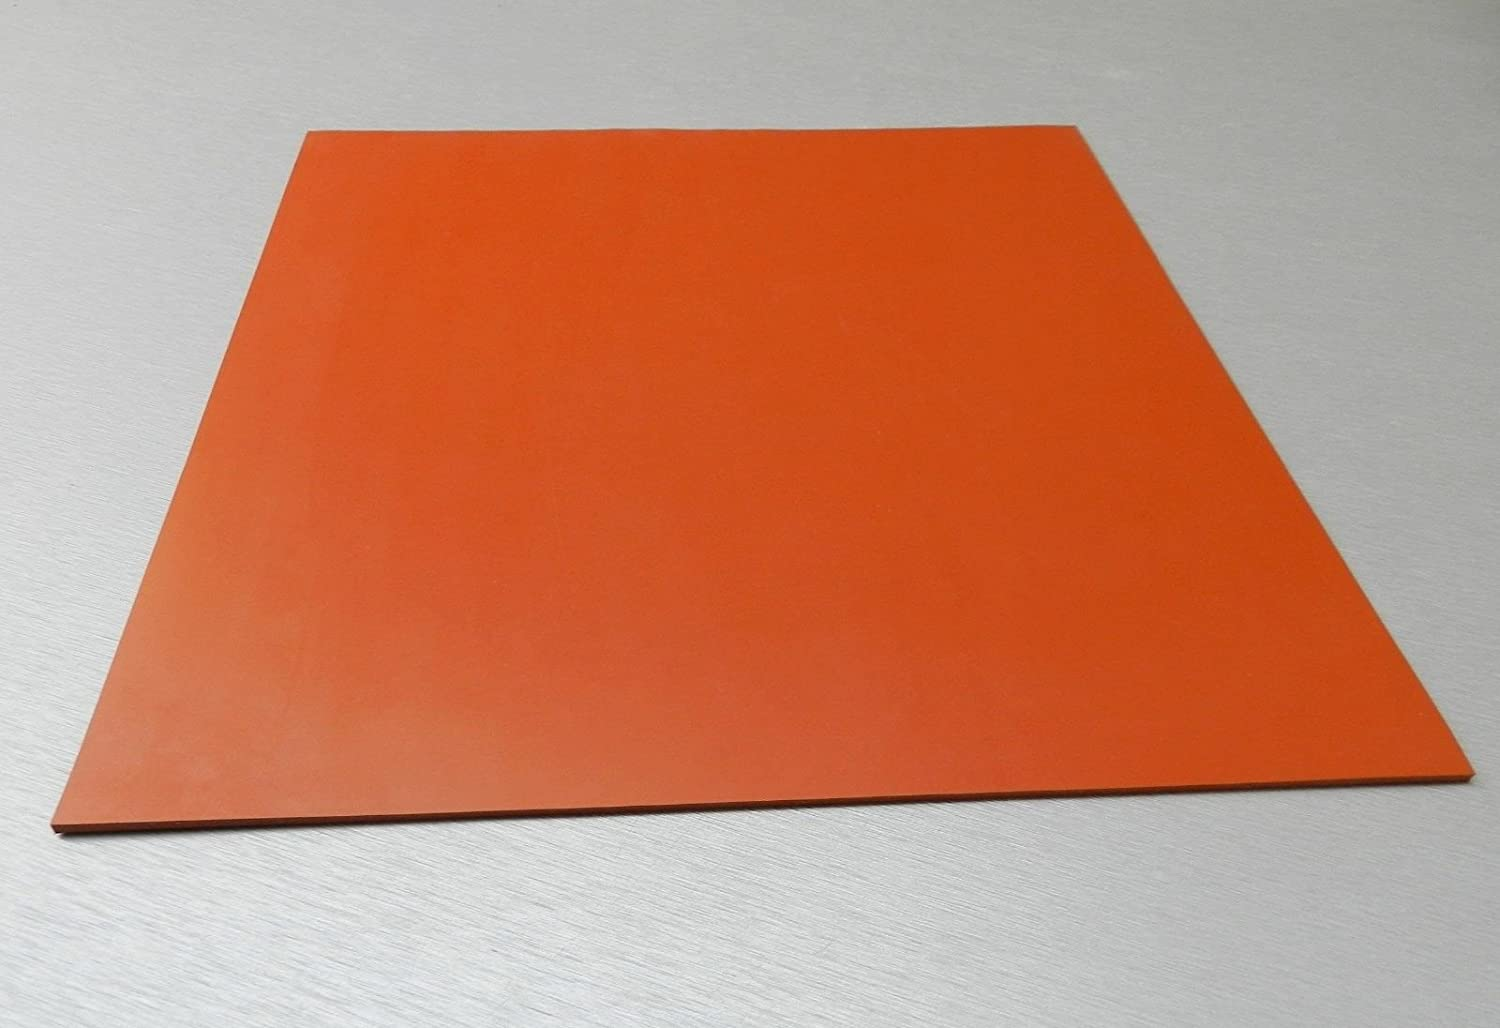 SILICONE RUBBER SHEET HIGH TEMP SOLID RED ORANGE COMMERCIAL GRADE 8 x 8 x 1 8 E 6